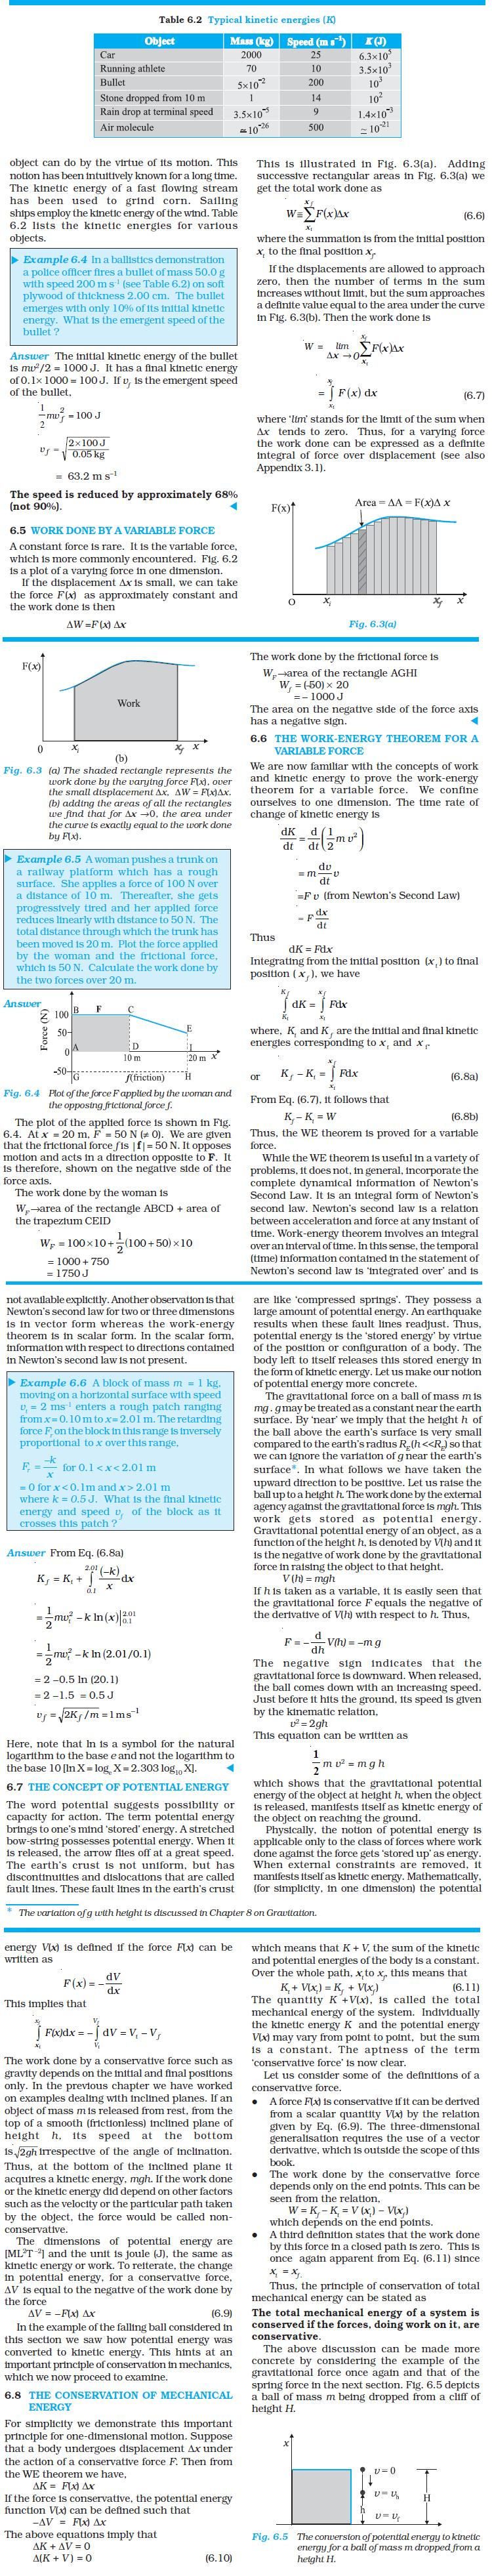 NCERT Class XI Physics Chapter 6 – Work, Energy and Power